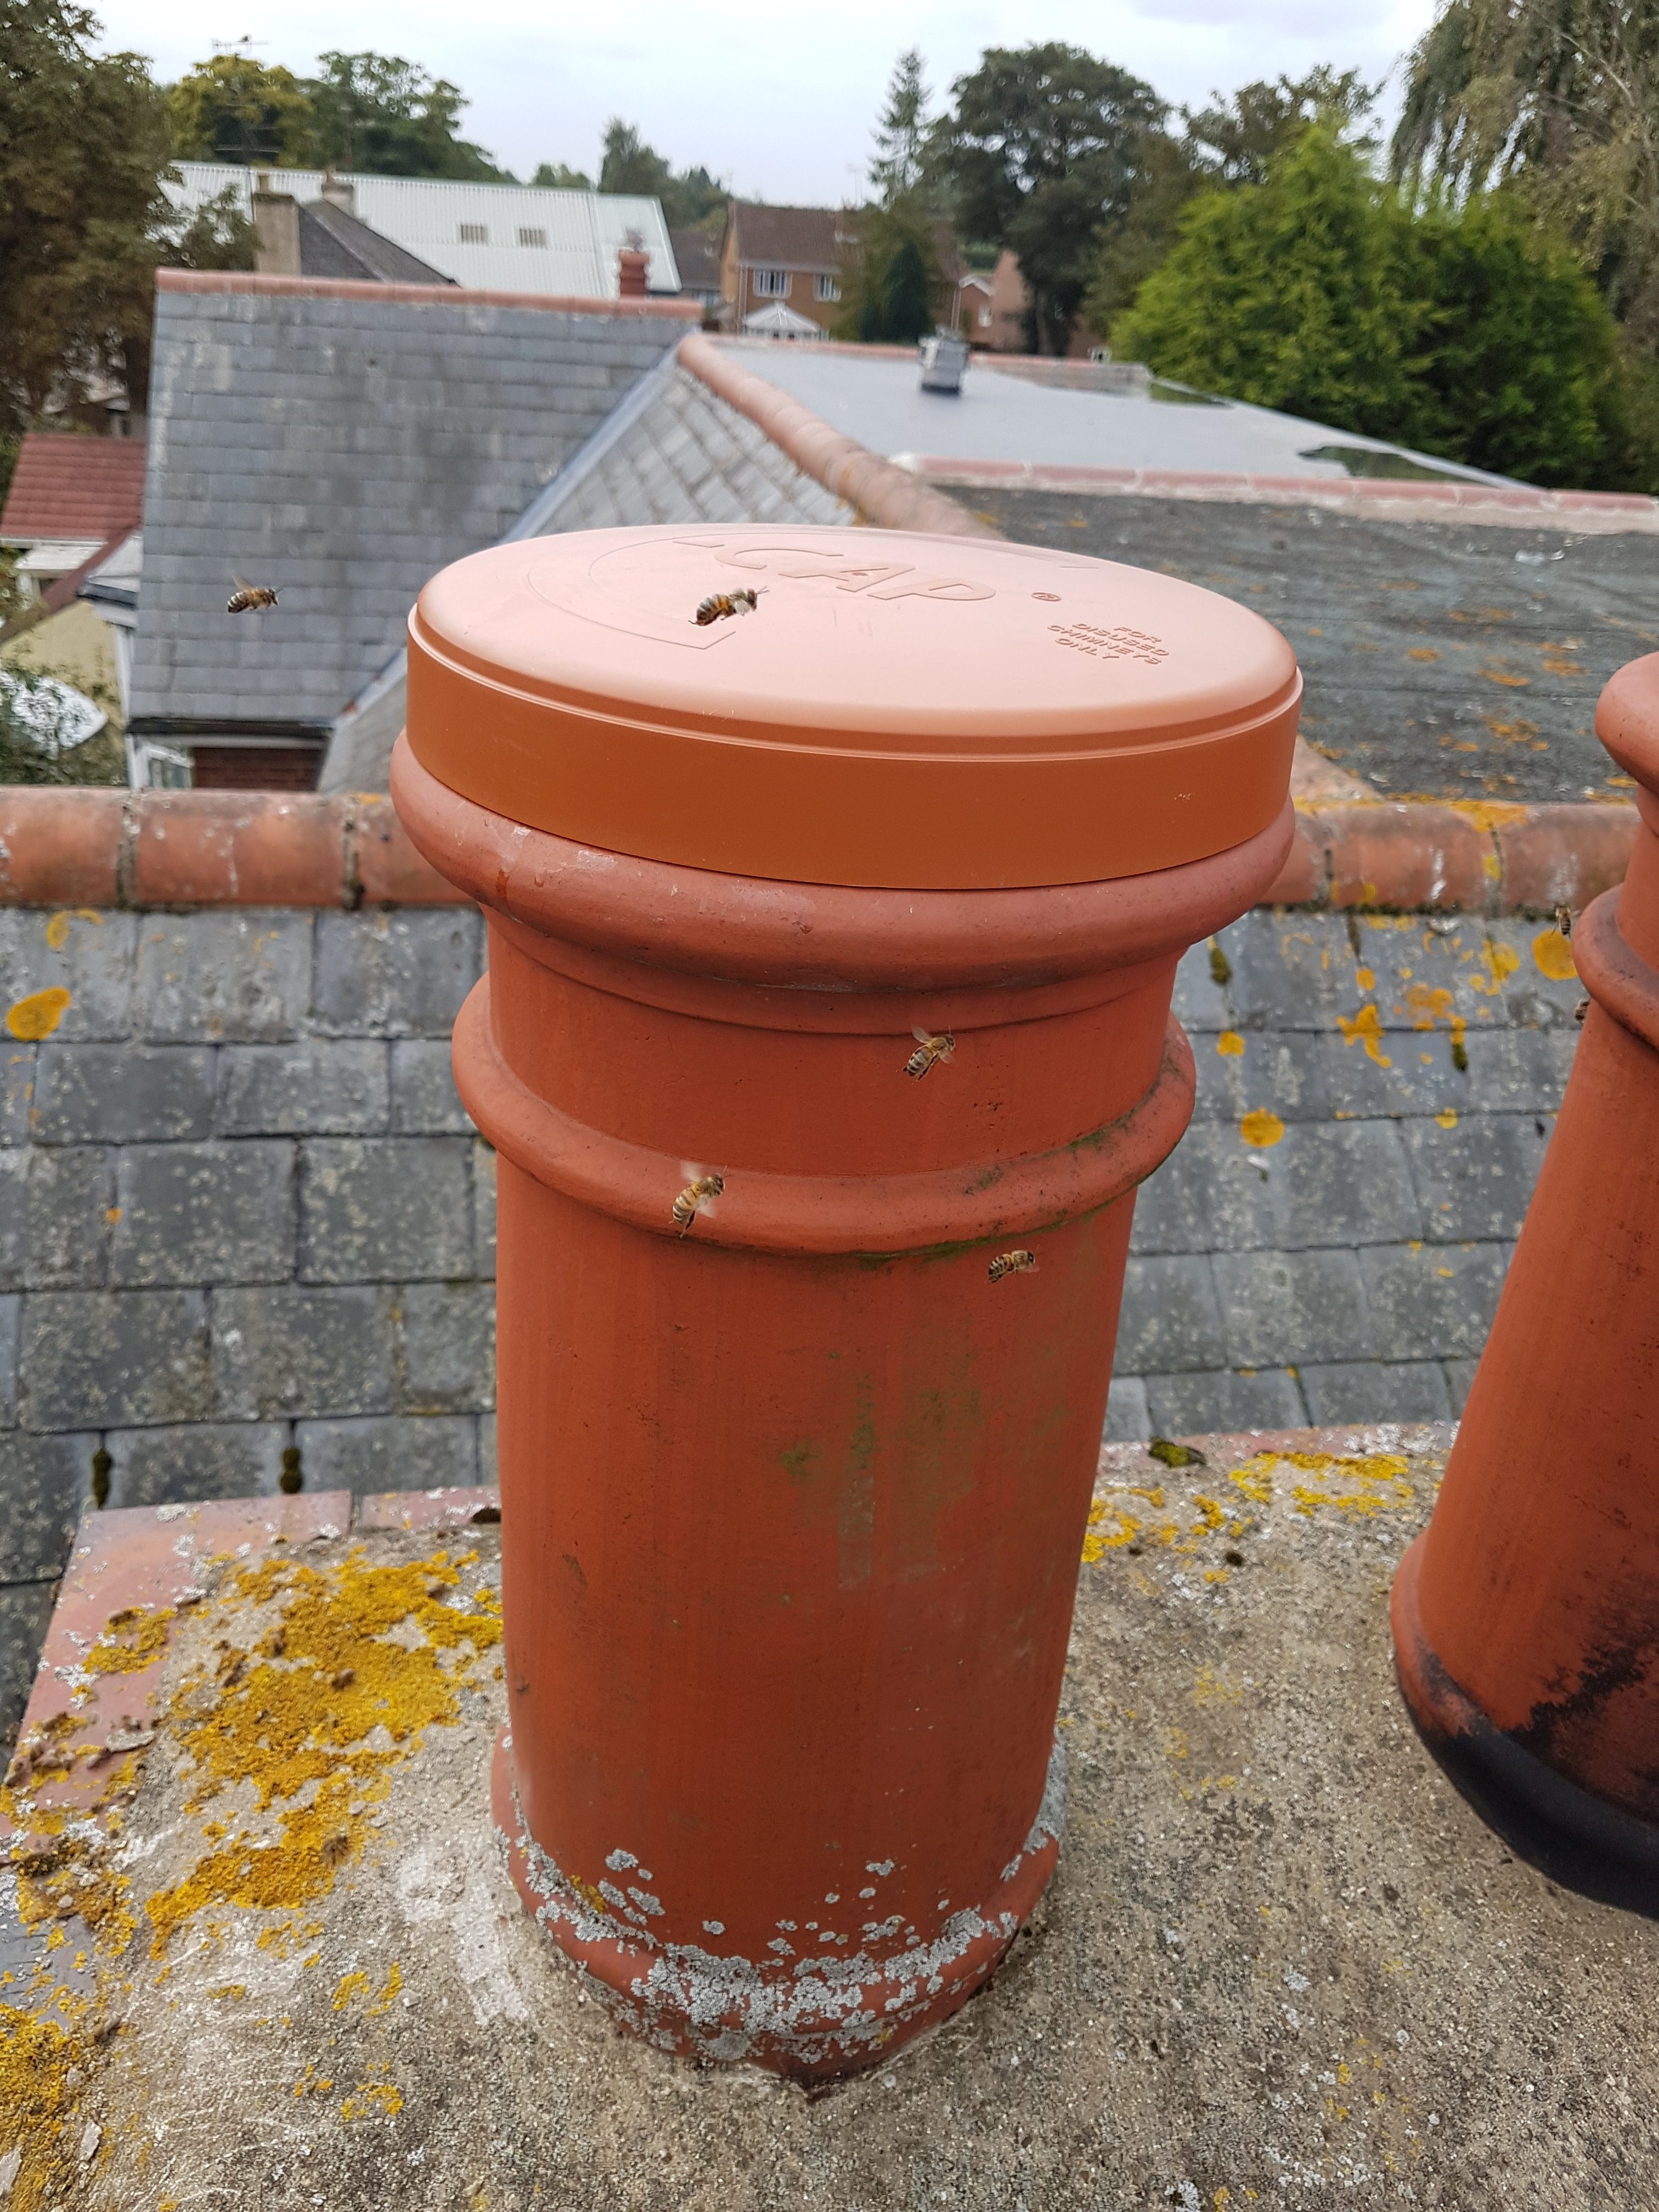 Honey bees chimney removal Lincolnshire.